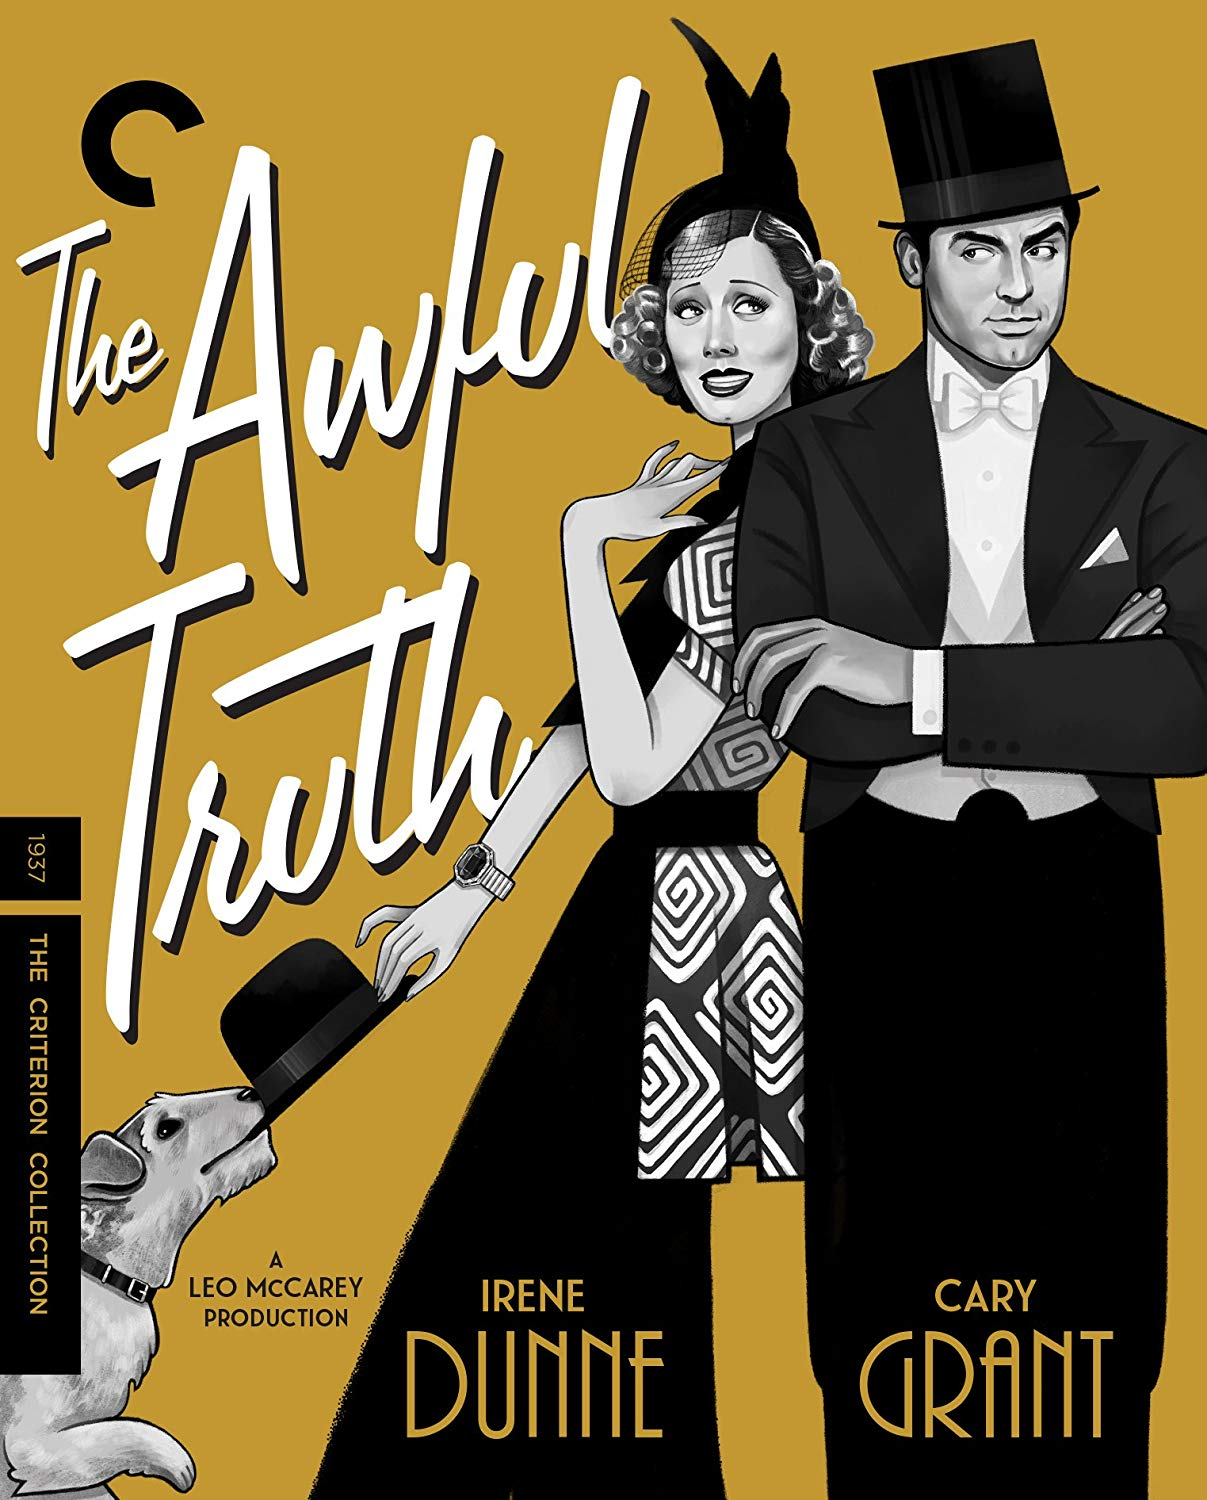 The Awful Truth - Buy at Amazon